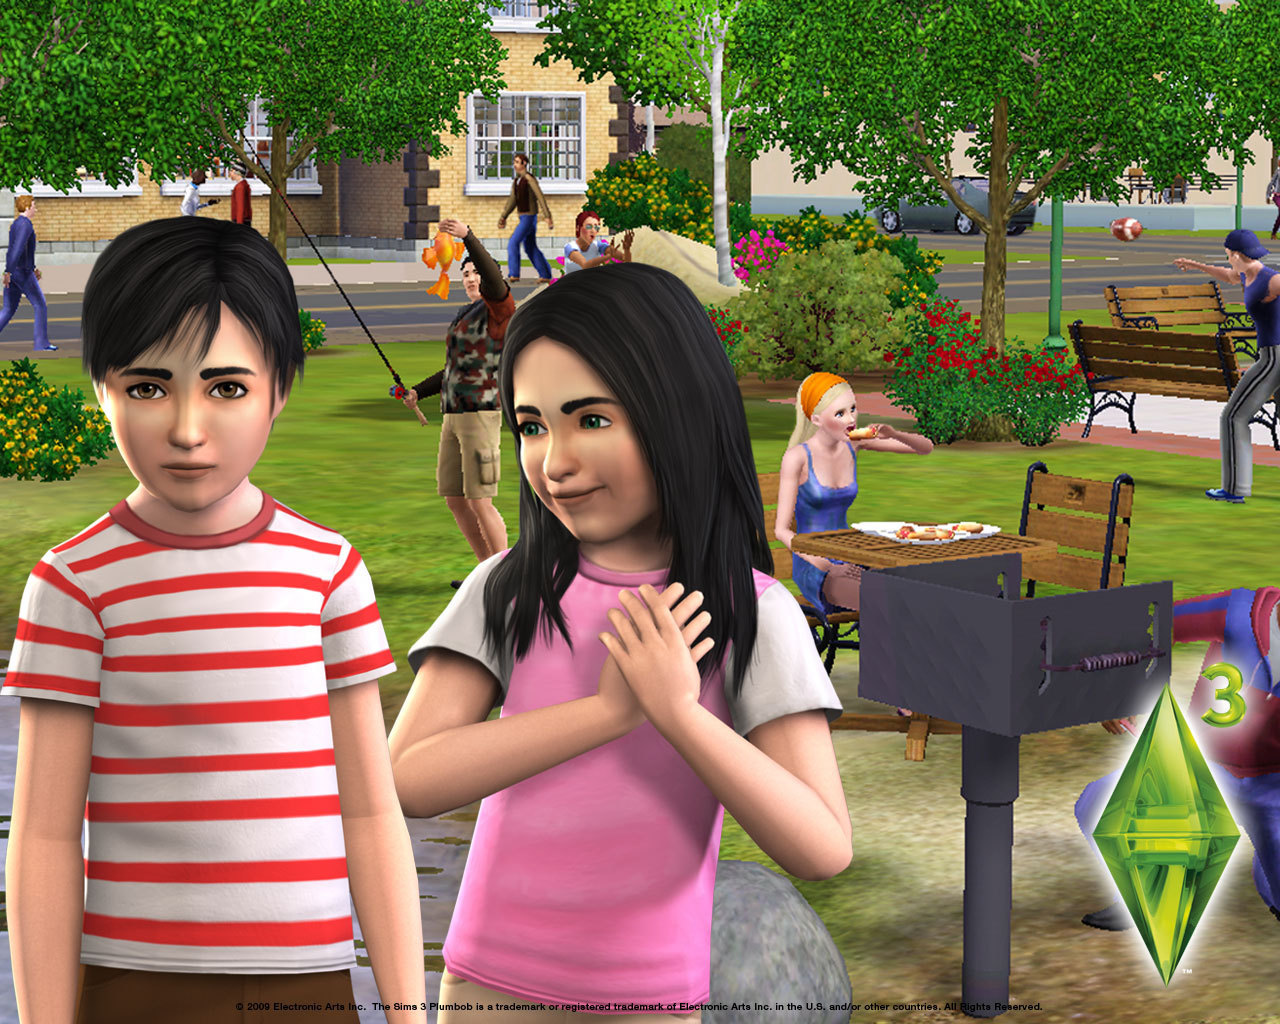 The Sims 3   The Sims 3 Wallpaper 6605352 1280x1024